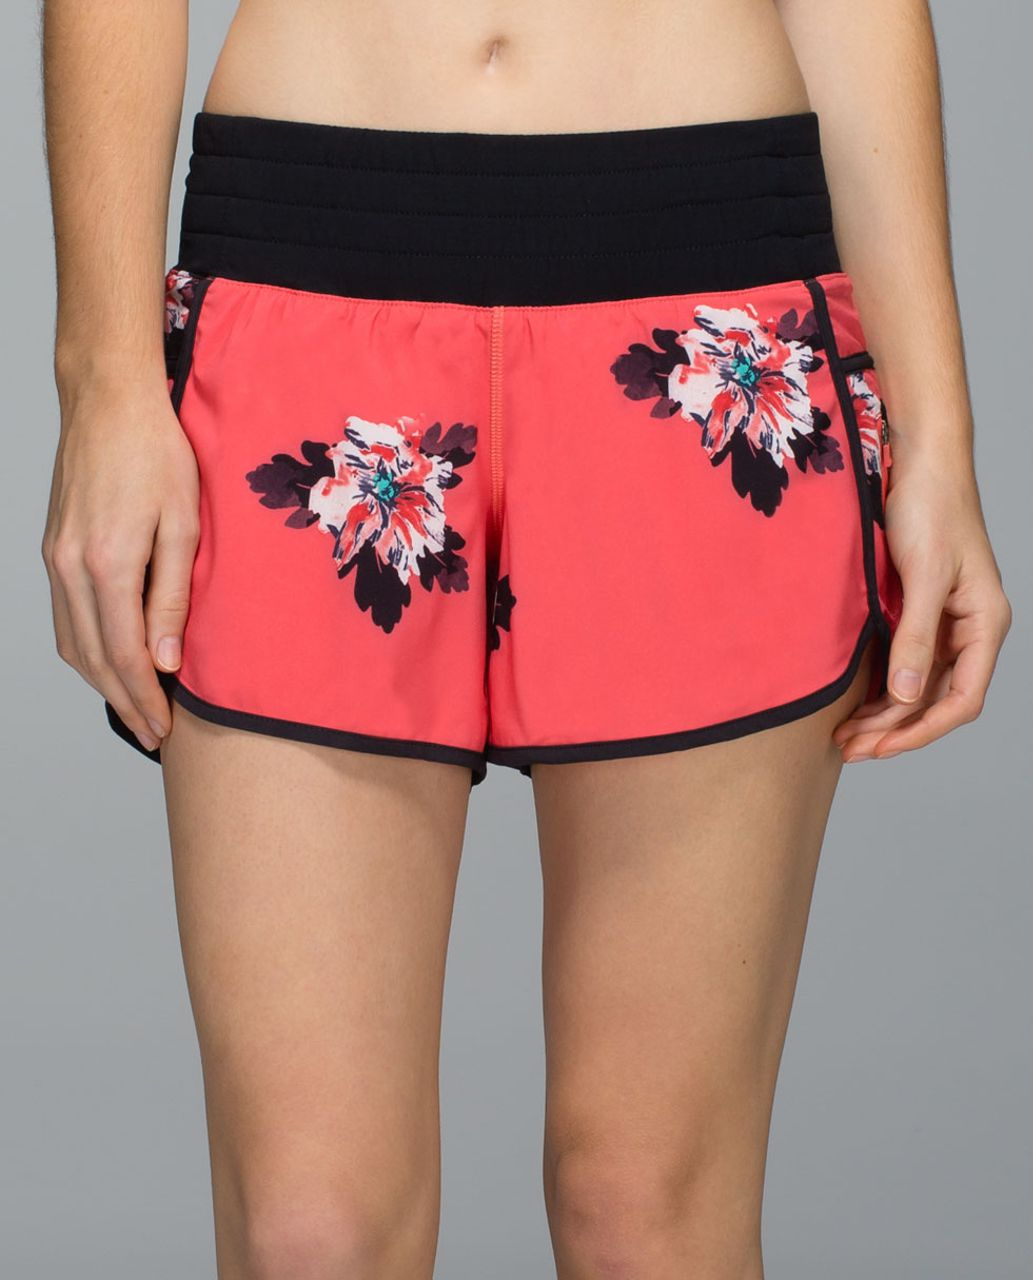 Lululemon Tracker Short II *4-way Stretch - Atomic Flower Parfait Pink Atomic Red / Black